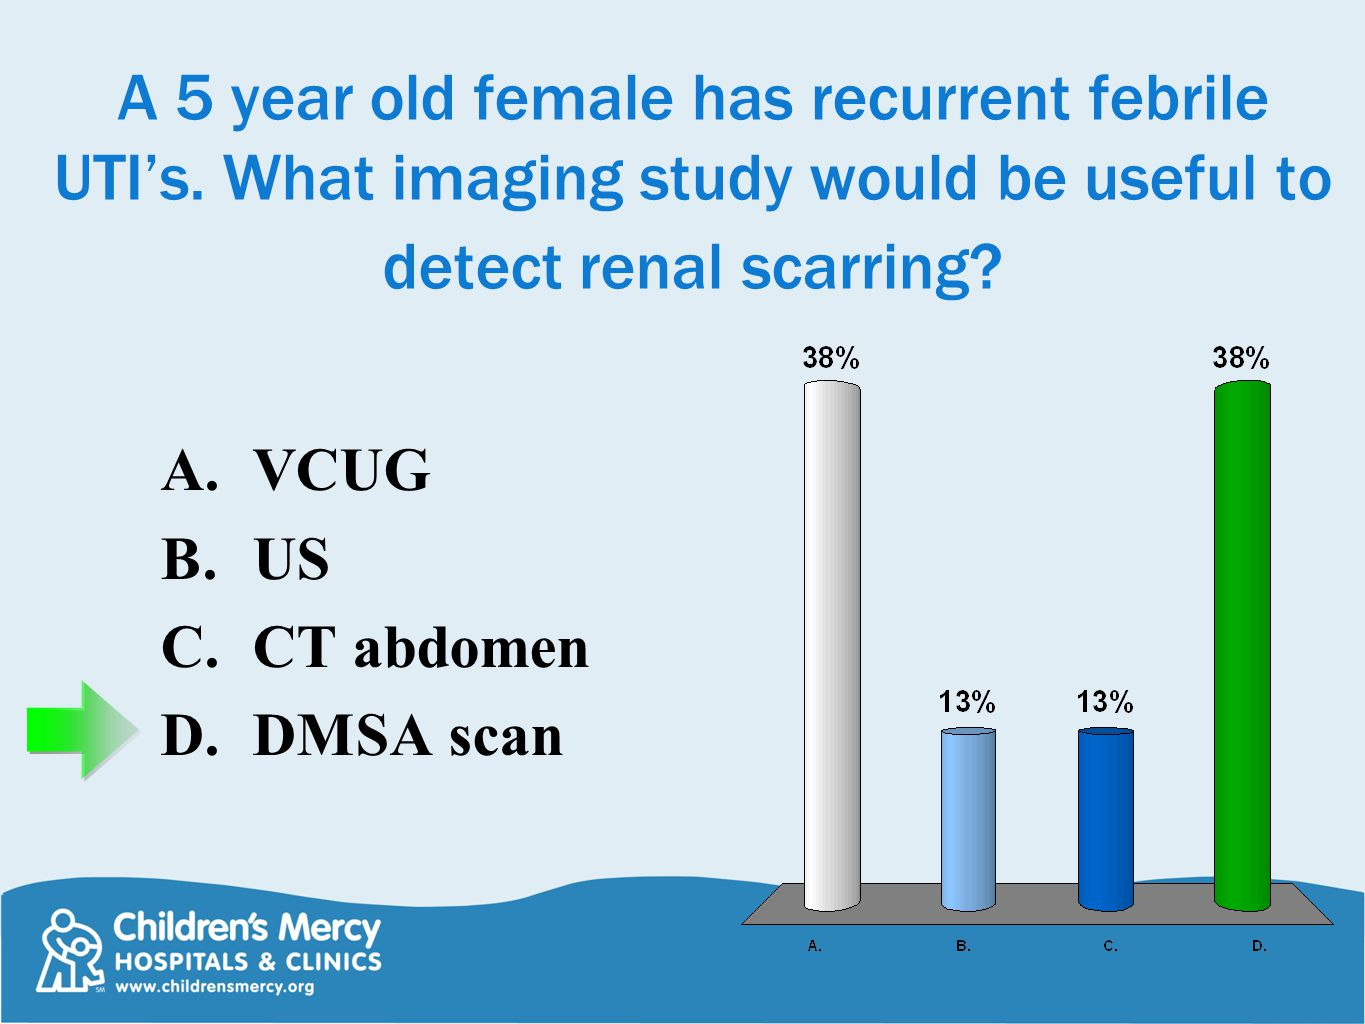 A 5 year old female has recurrent febrile UTI's